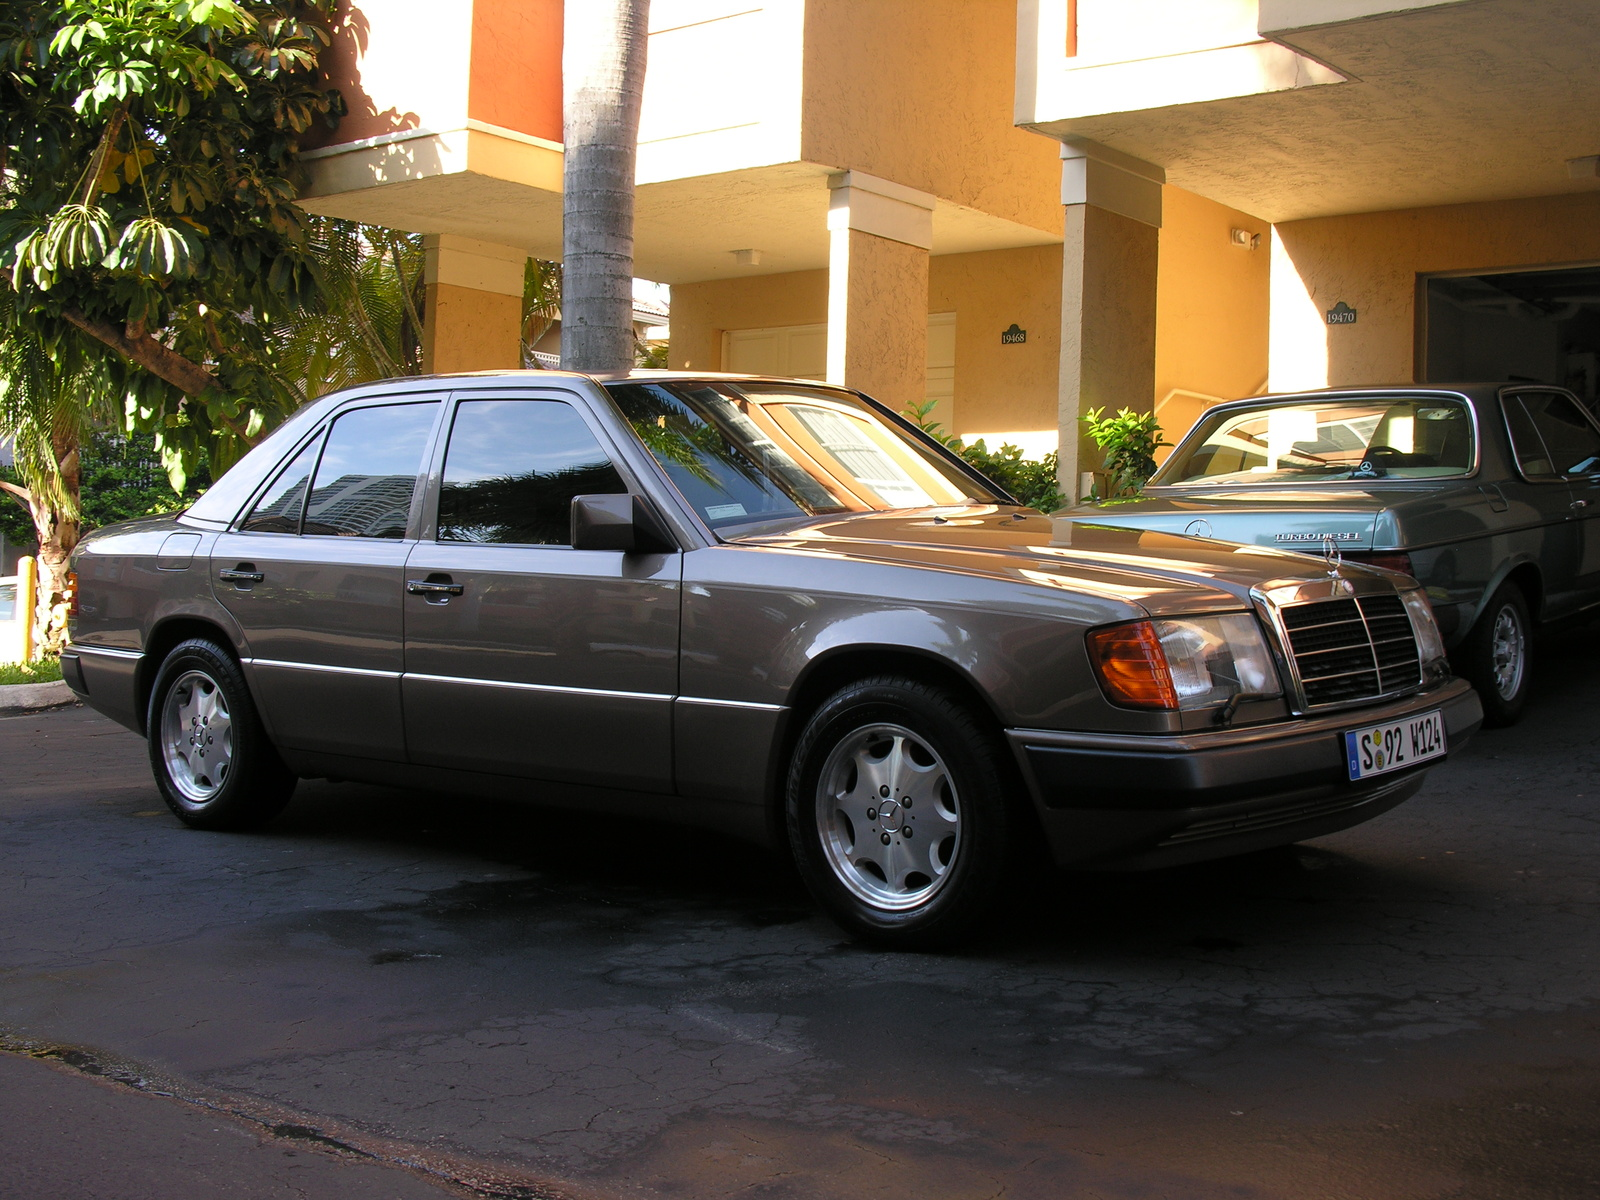 1992 Mercedes-Benz 300-Class 4 Dr 300E Sedan picture, exterior